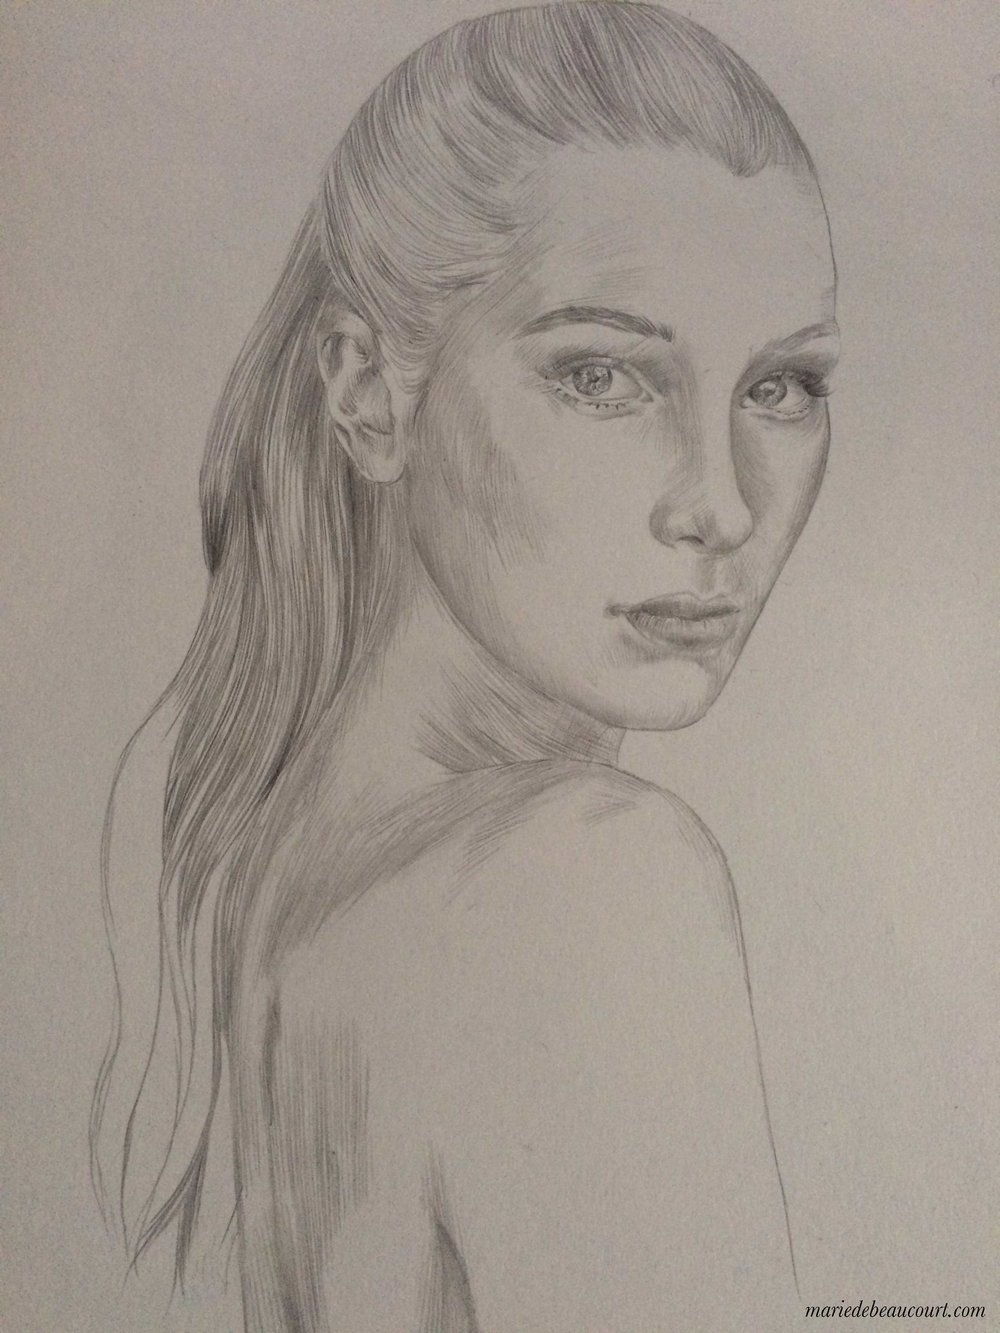 marie-de-beaucourt-portraits-hadid-work-in-progress7.jpg